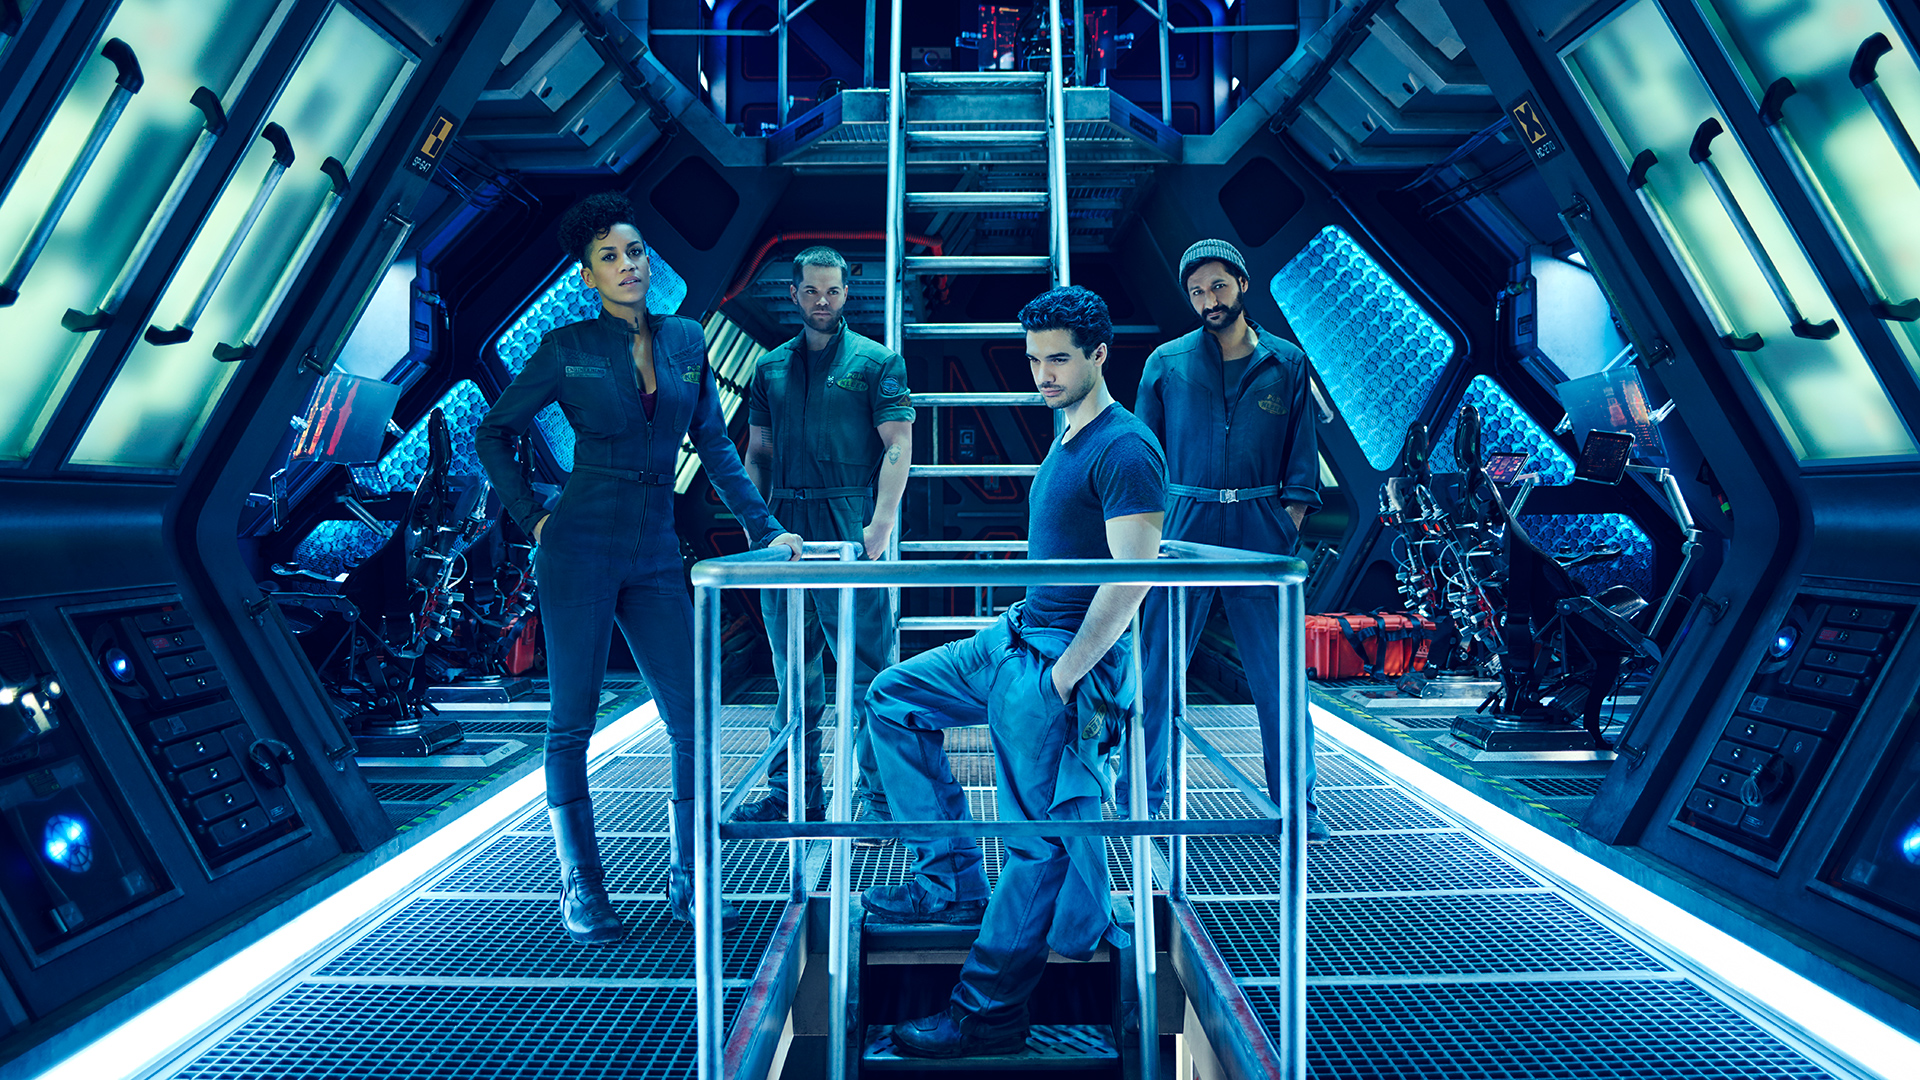 the-expanse-crew